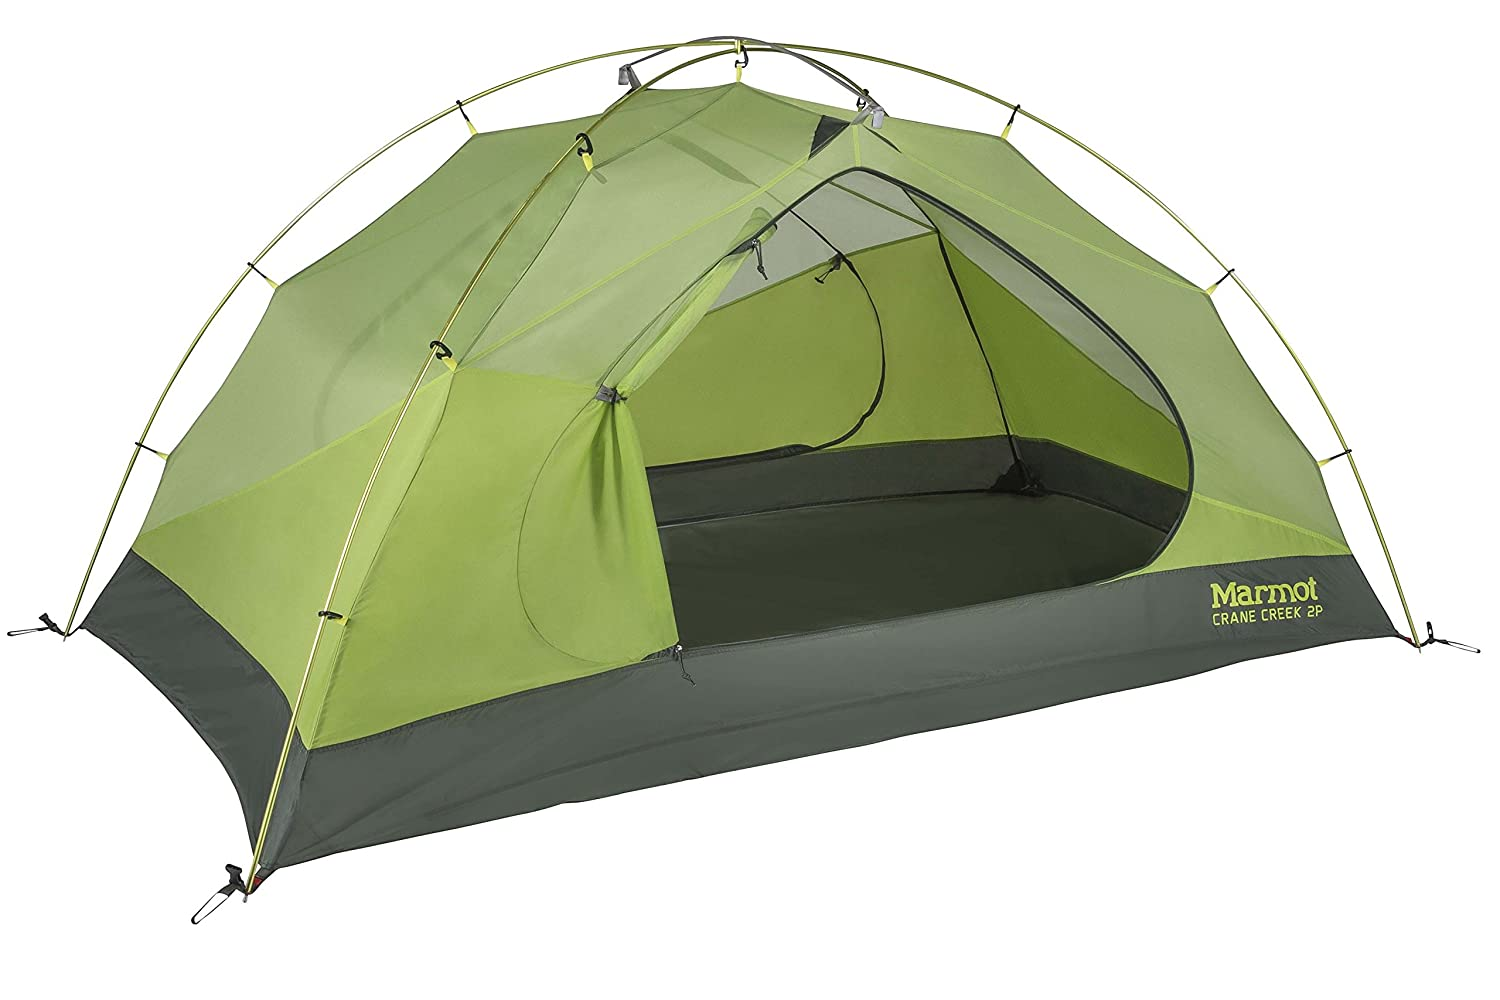 Marmot Crane Creek Backpacking and Best Instant Tent